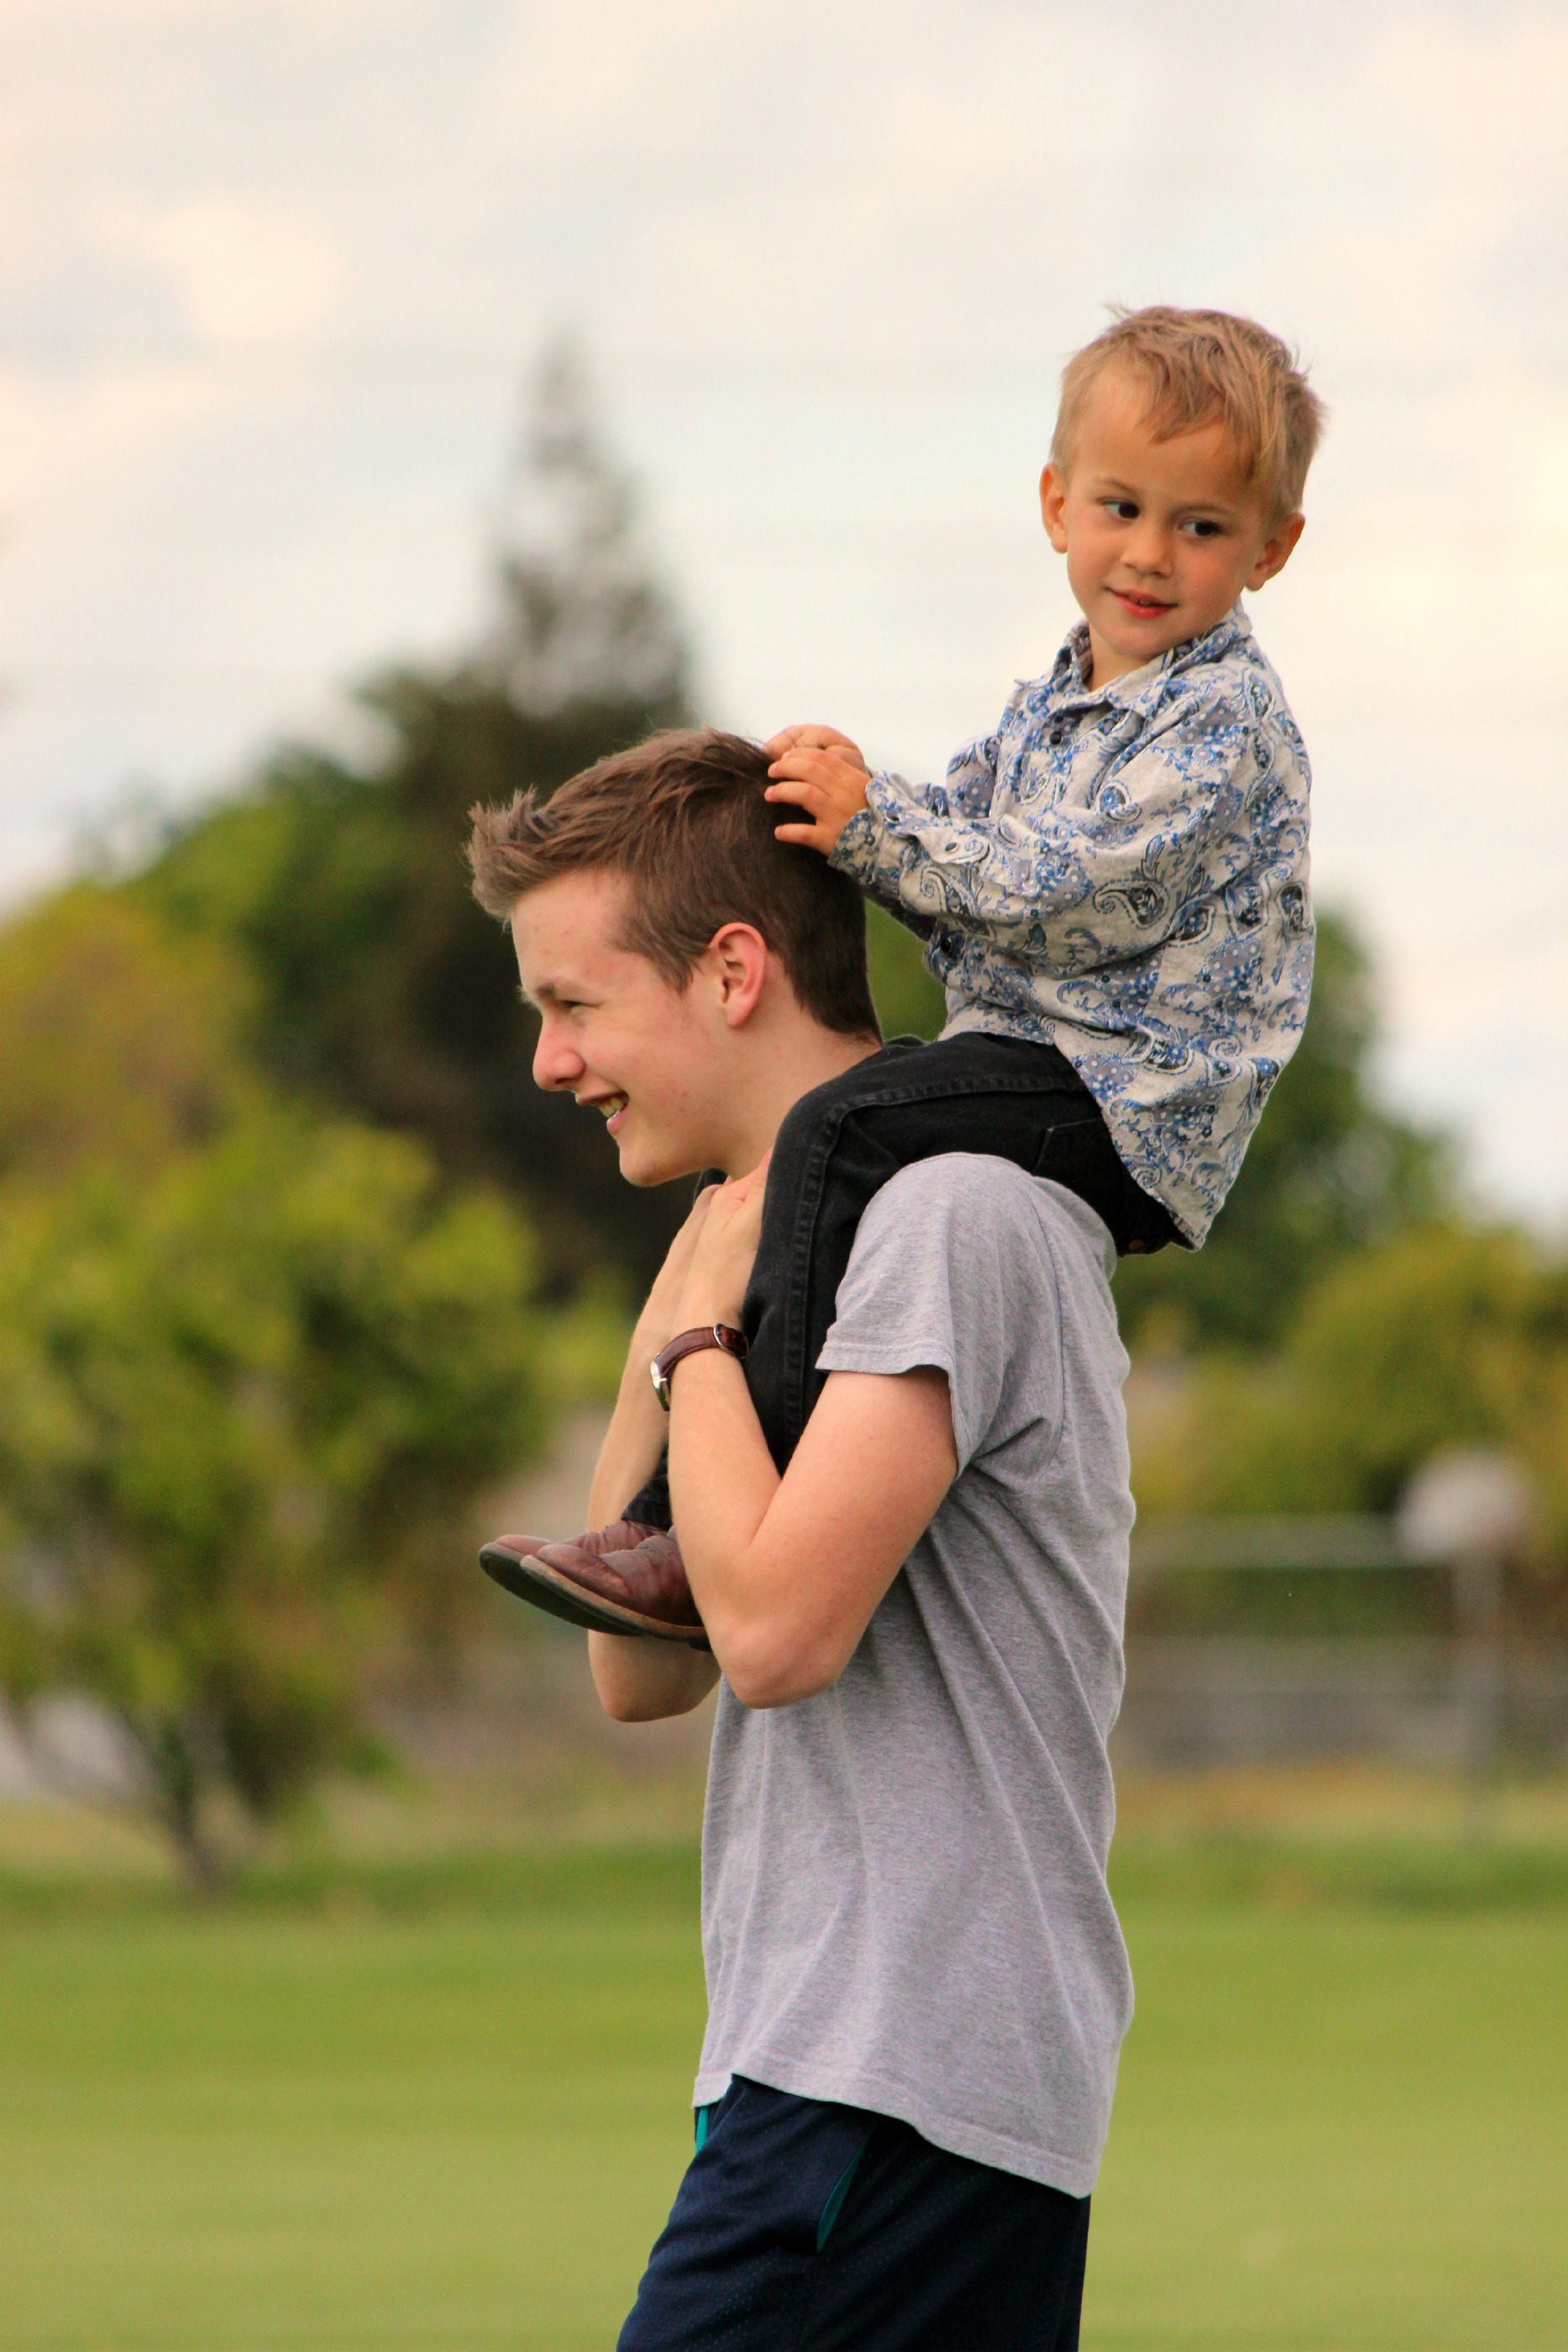 My brother, Justin, giving away free piggy back rides.